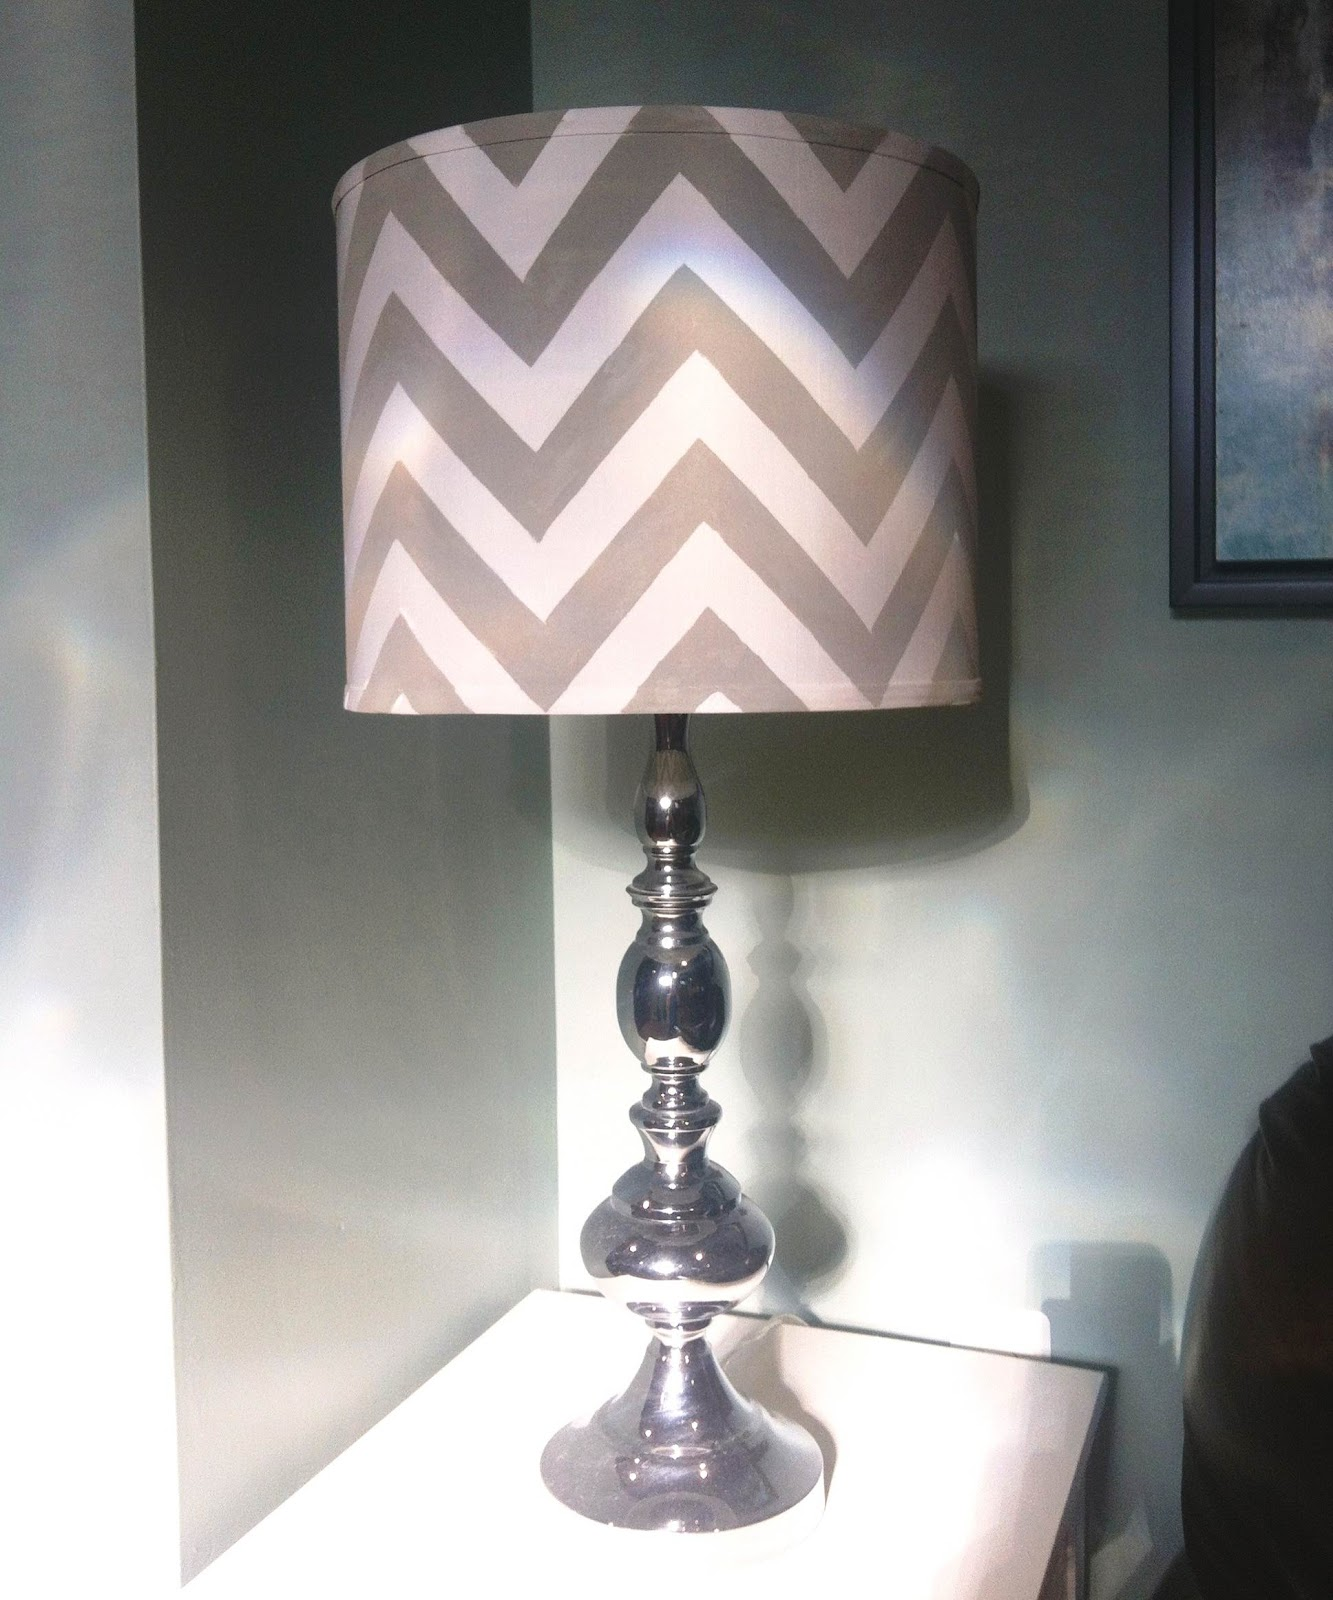 Juneberry lane juneberry home diy lamp shade fun - Diy lamp shade ...